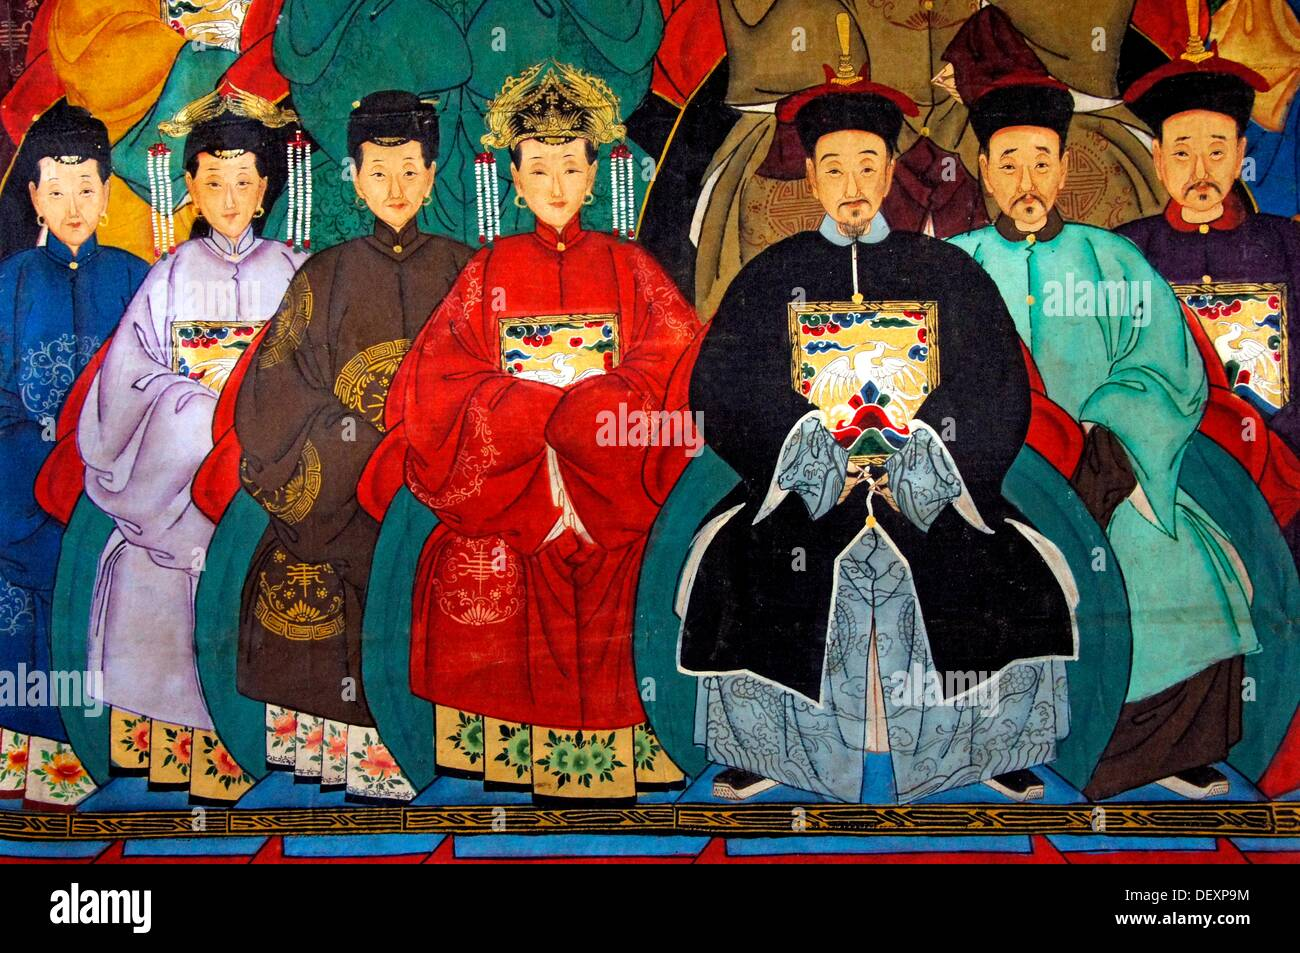 Painting on fabric representing high society (19th century), China - Stock Image